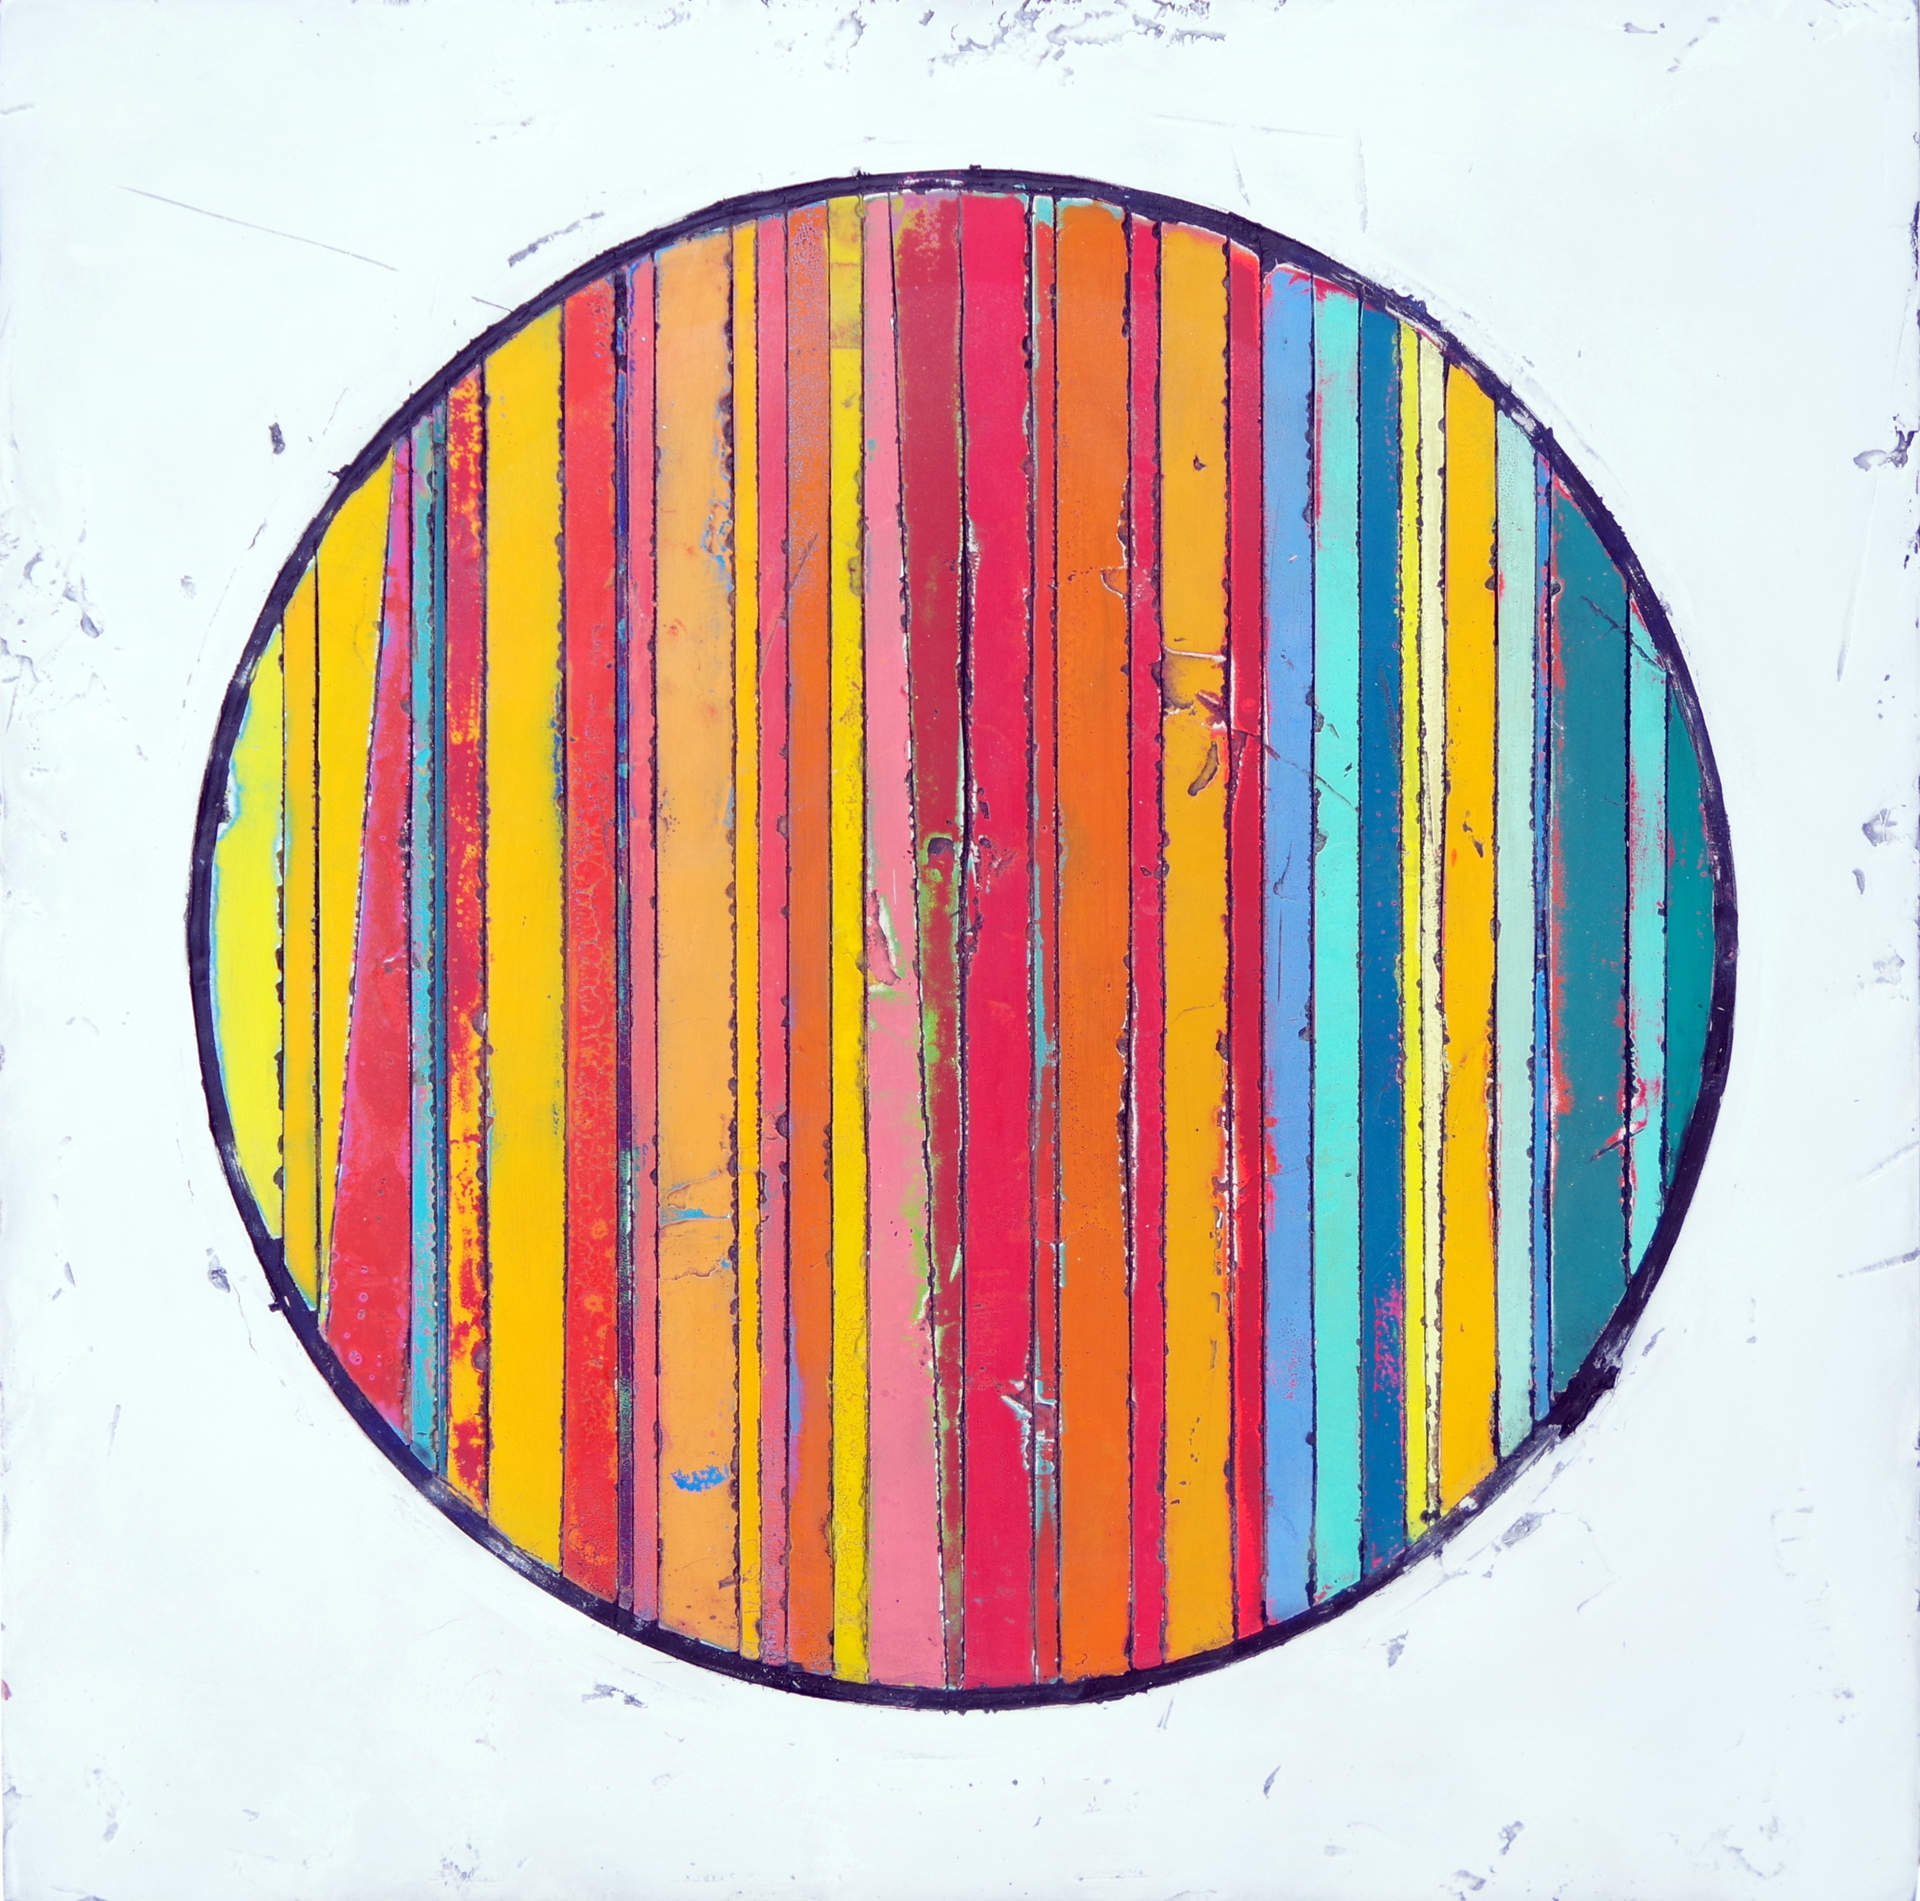 Circle Squared 3 by Curtis Olson